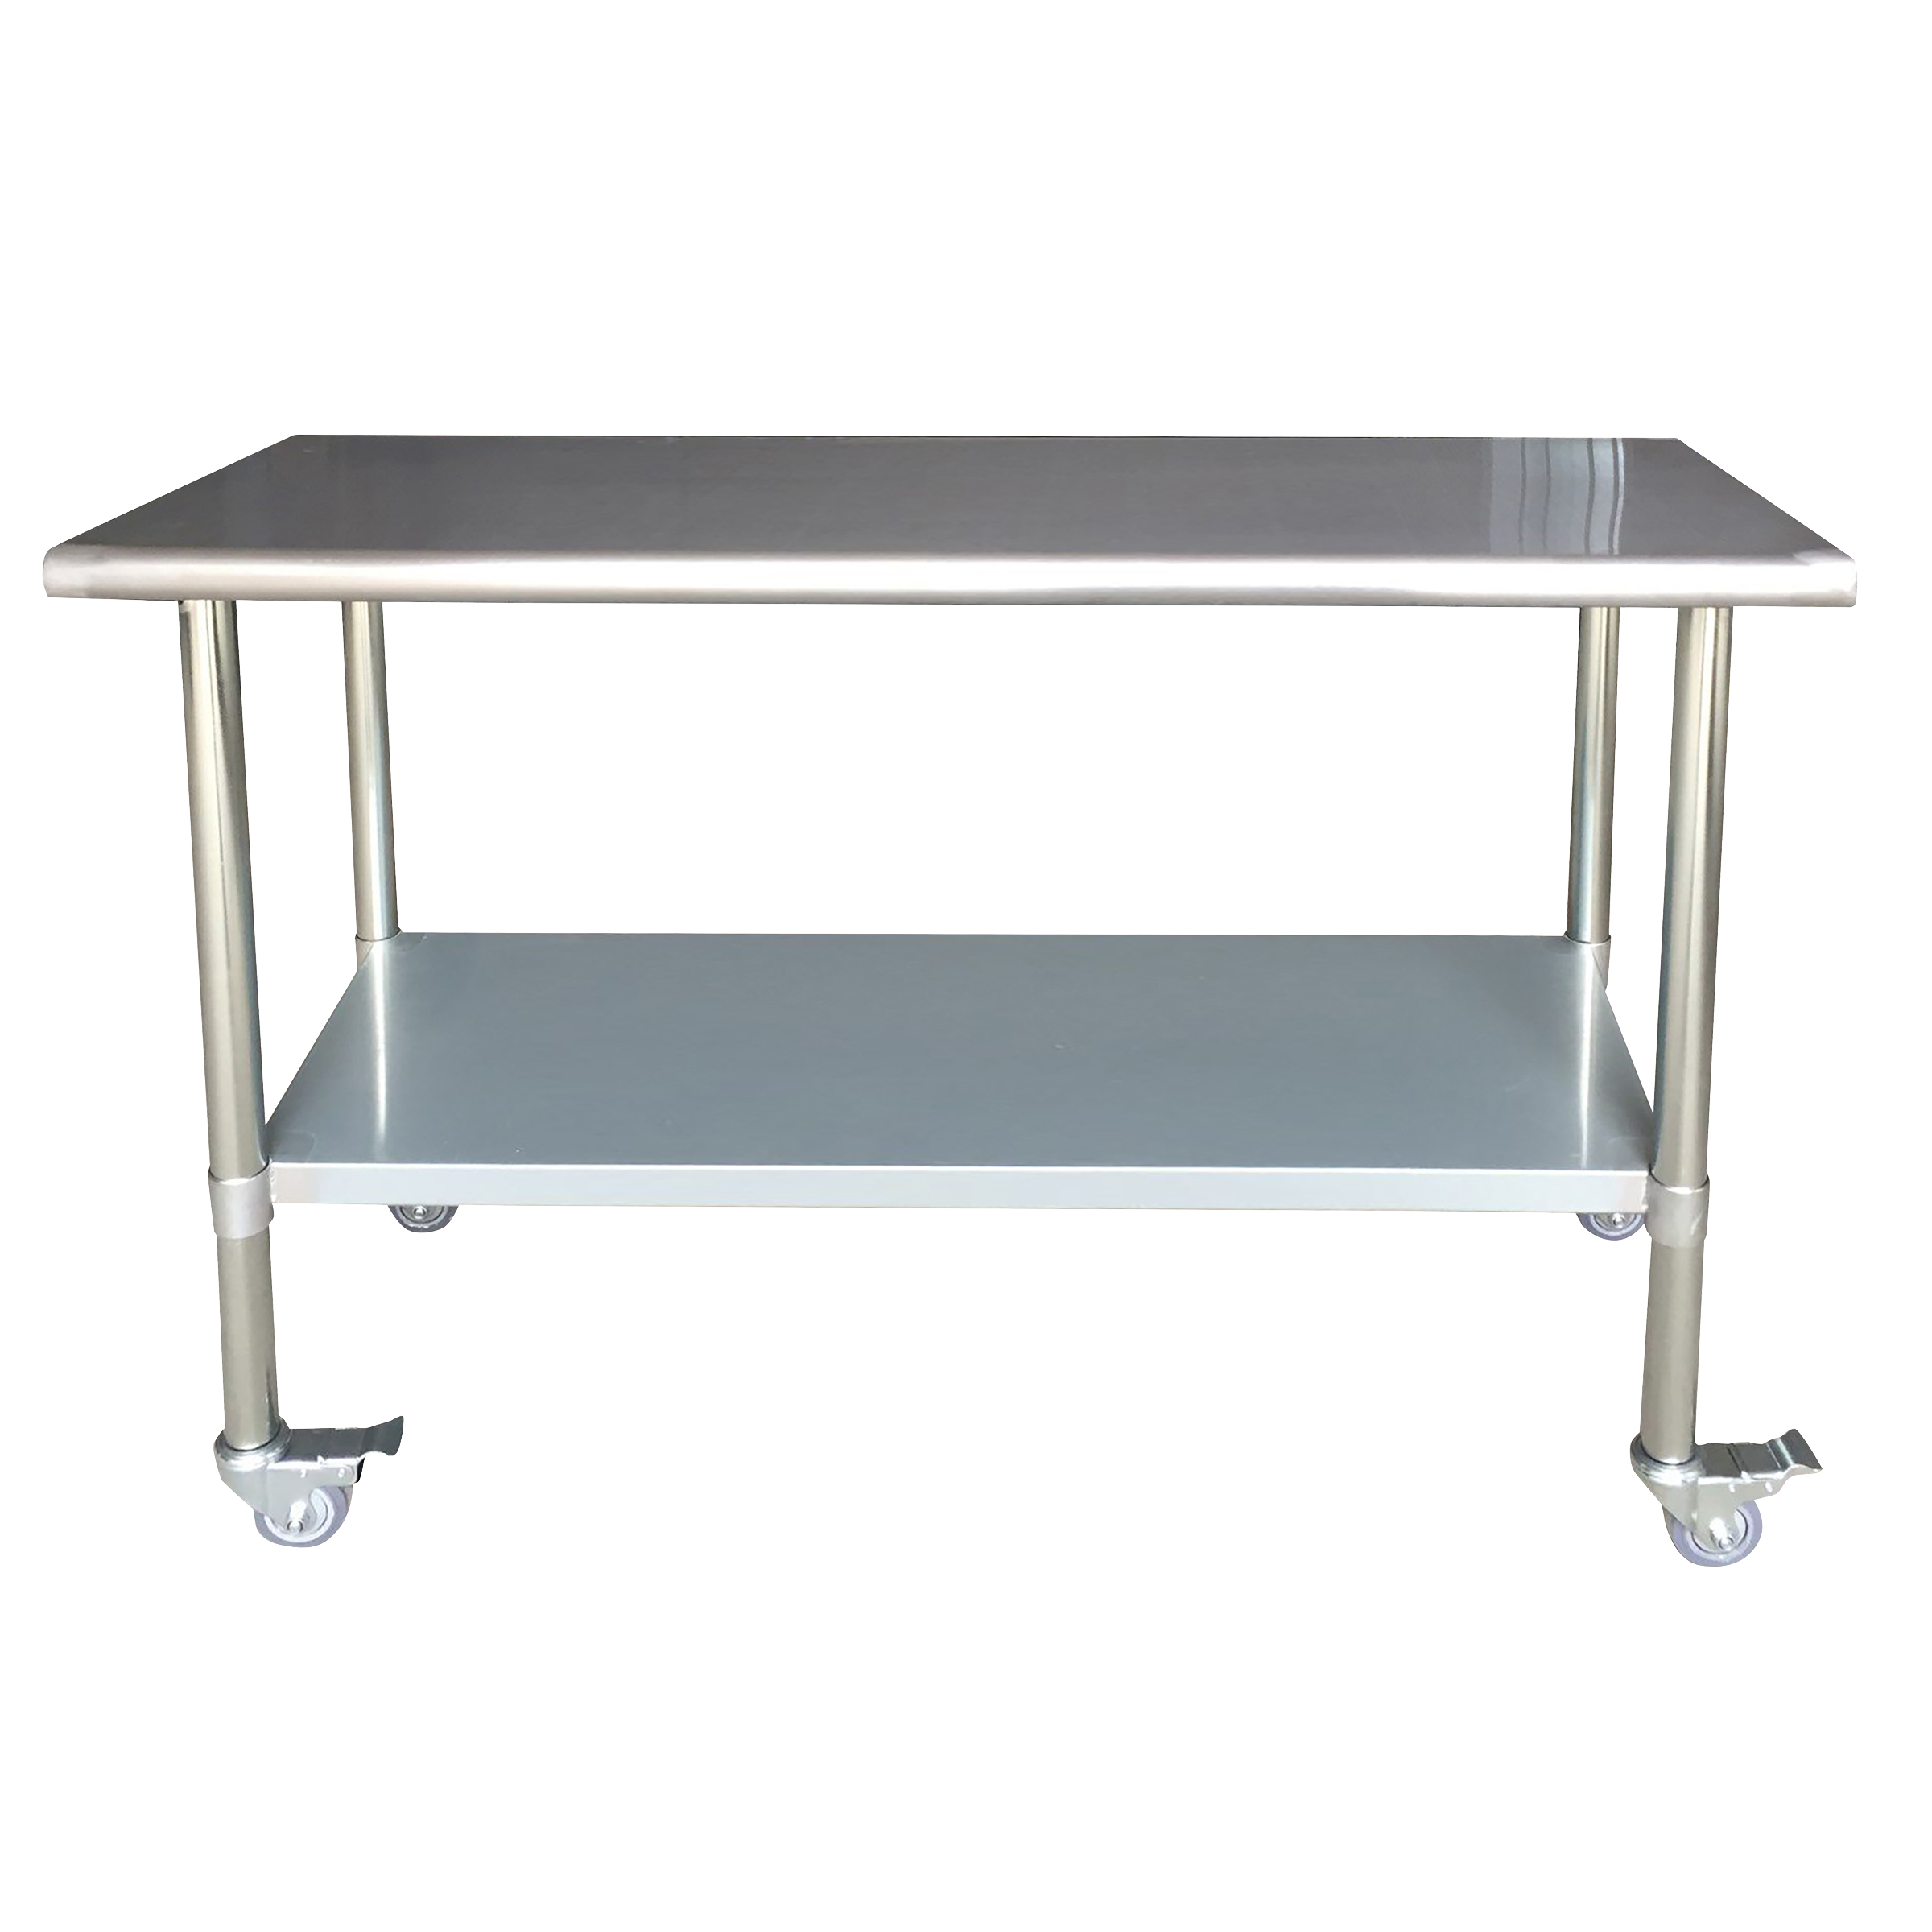 Stainless Steel Work Table with Casters 24 x 60 Inches